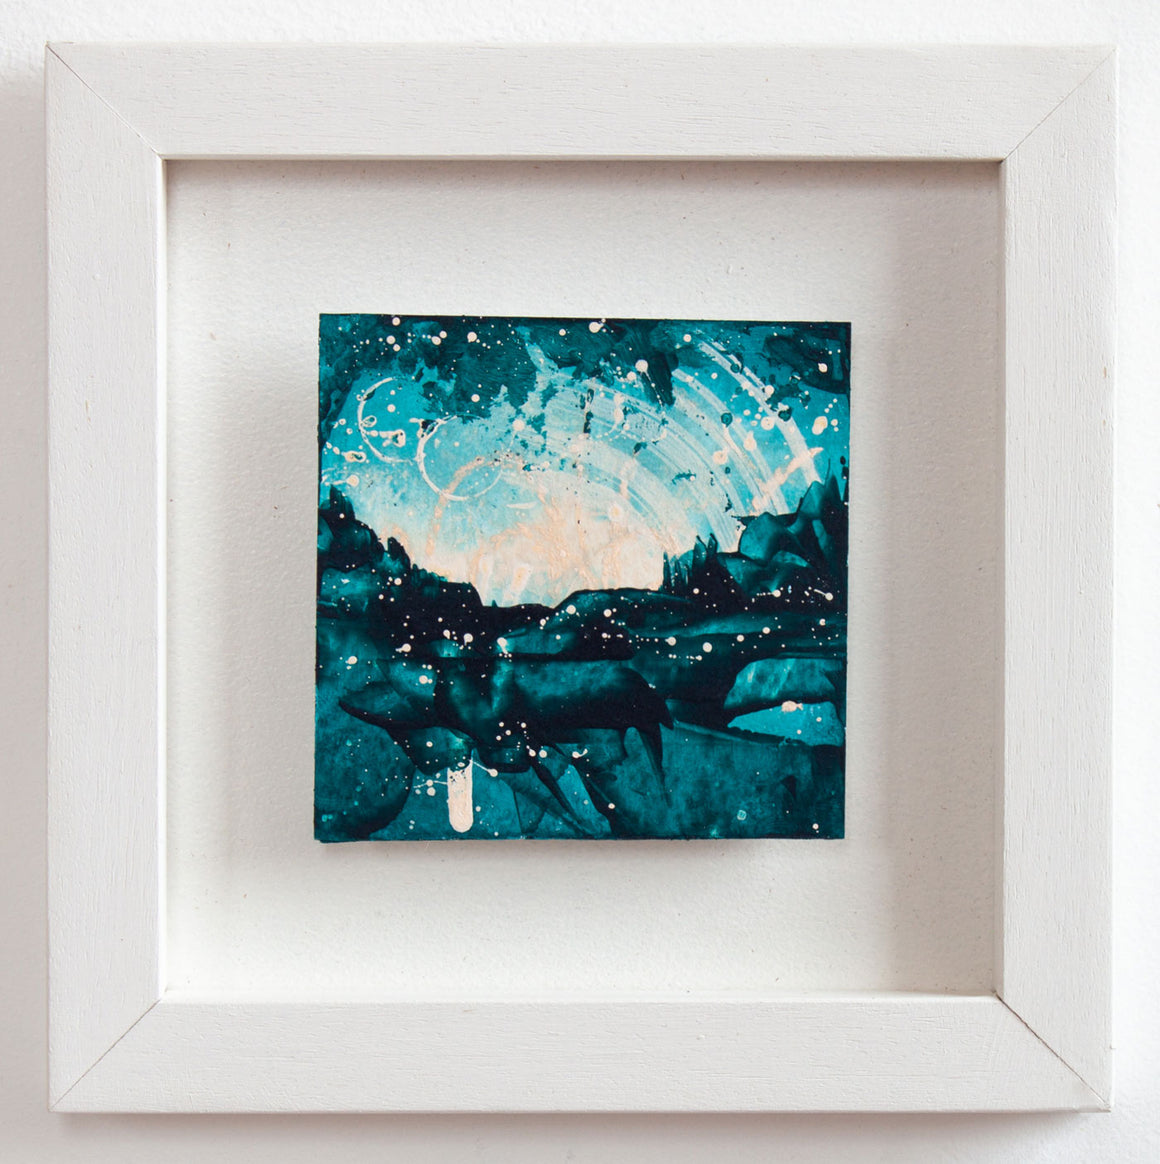 Castles in the sky Mini painting turquoise pink peach 20cm x 20cm